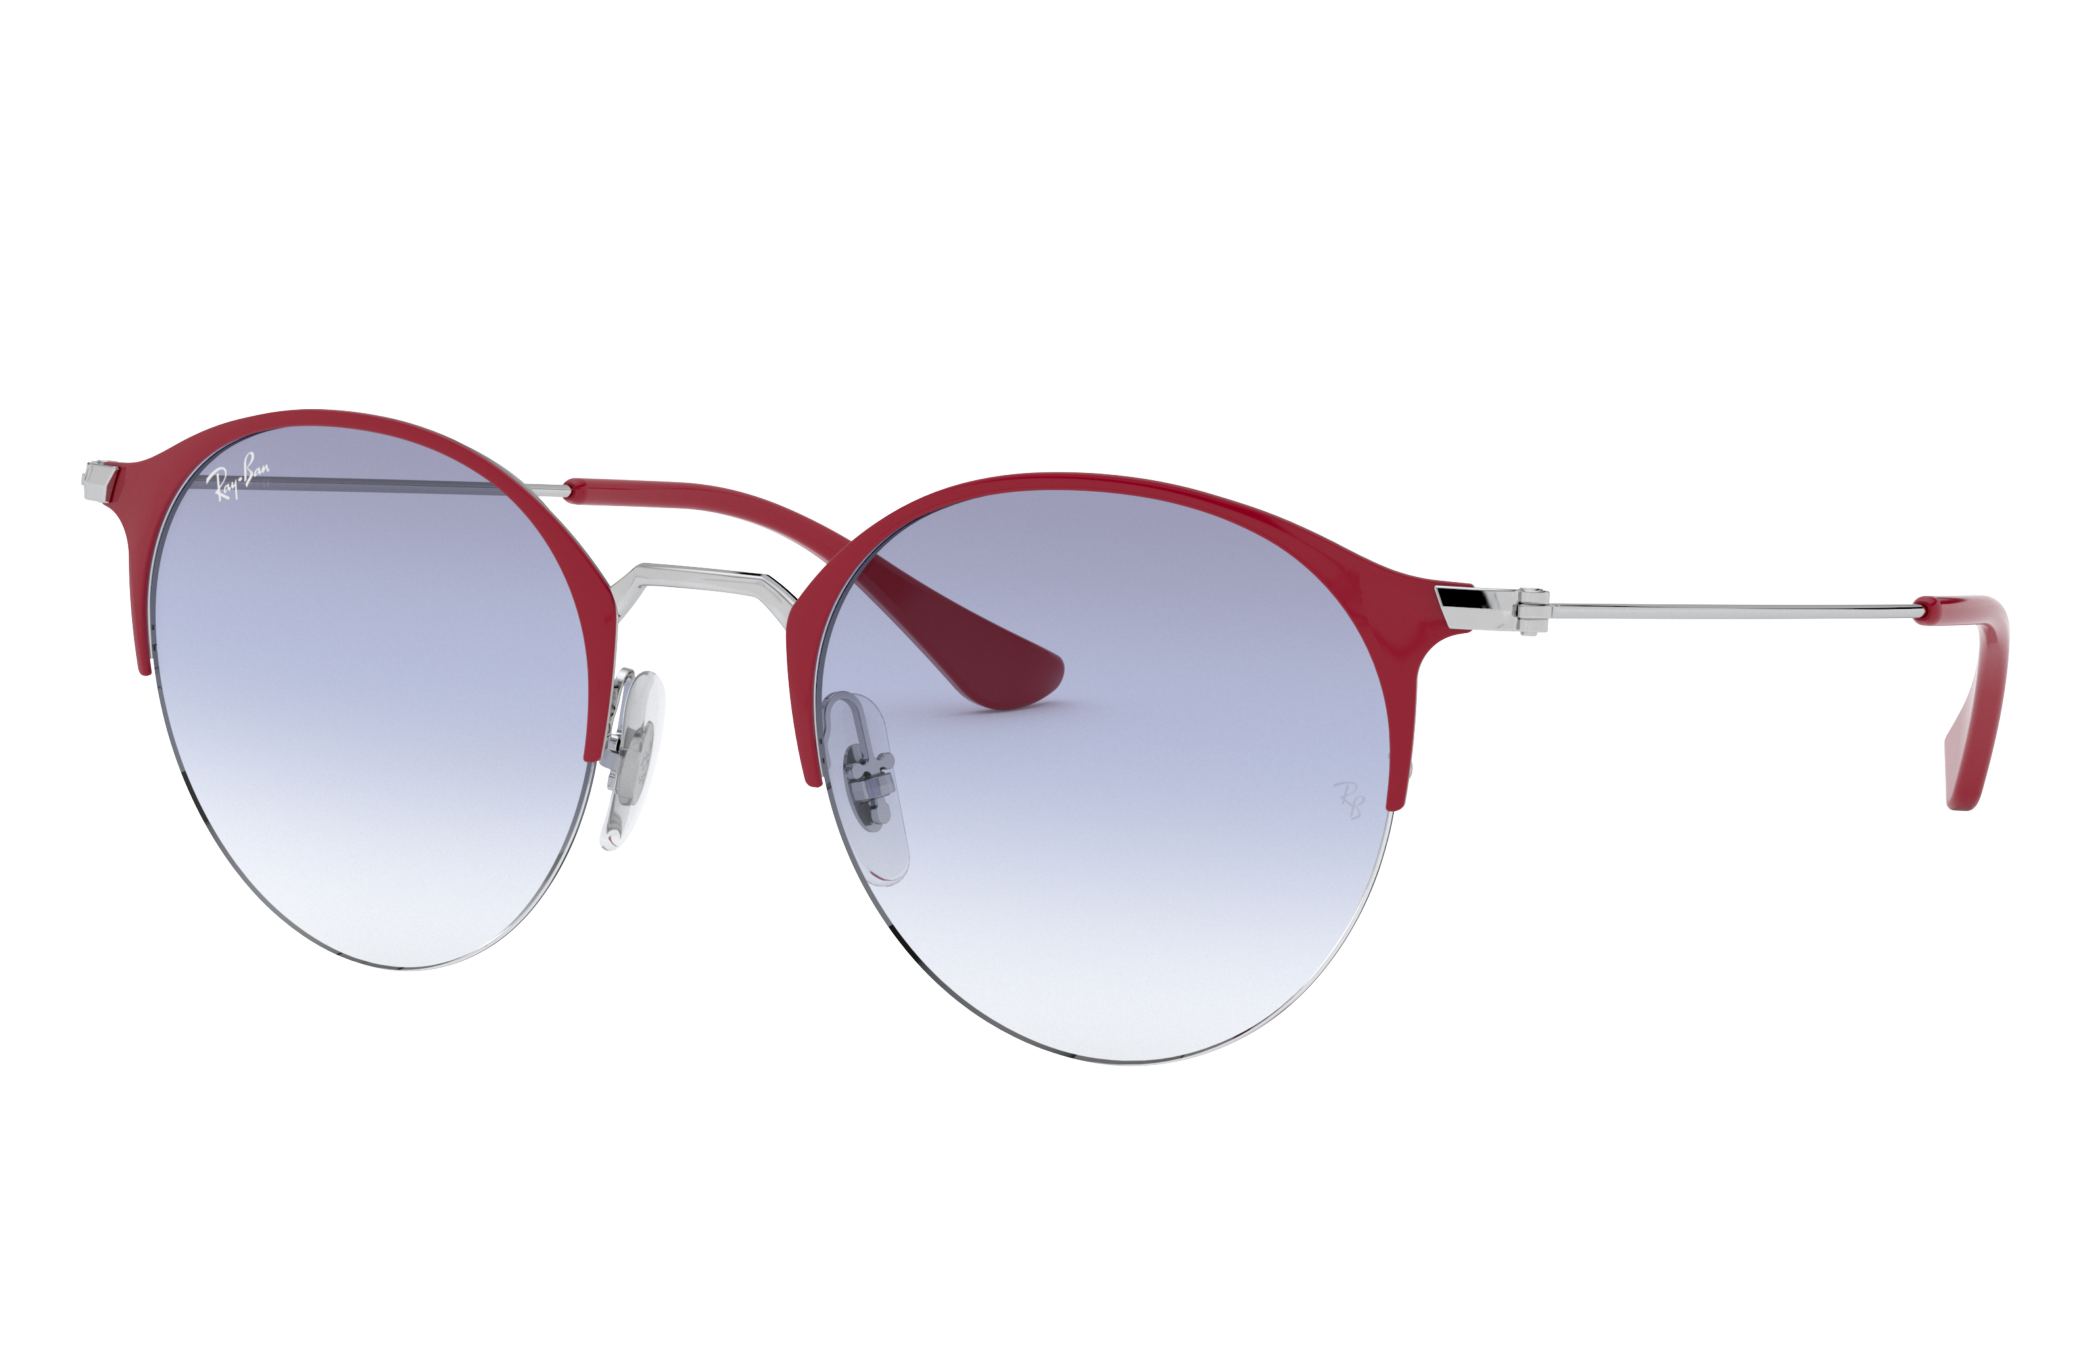 Ray-Ban Rb3578 Silver, Blue Lenses - RB3578